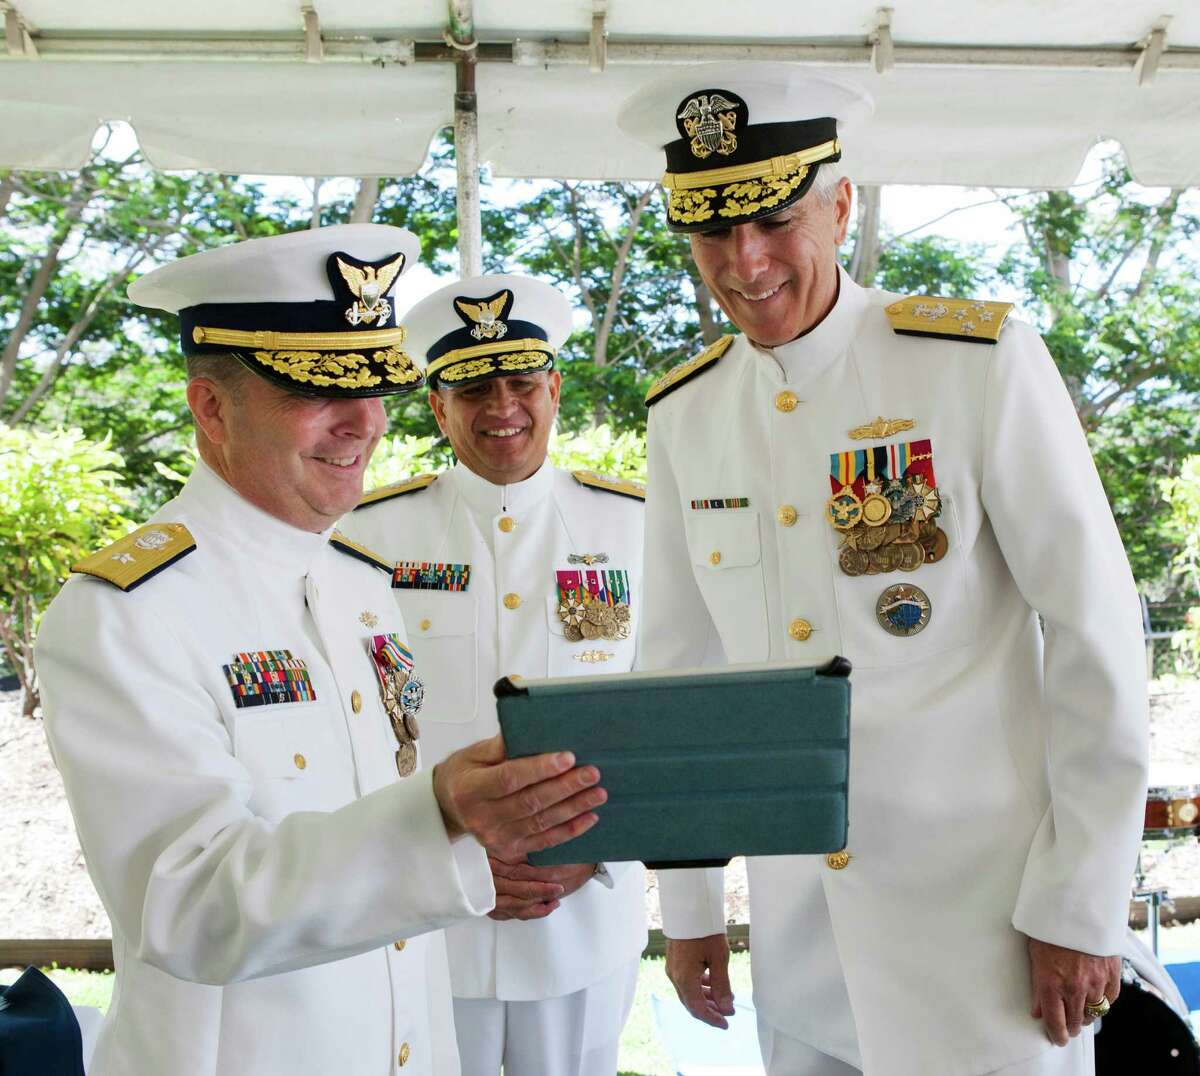 Rear Adm. Christopher Tomney of the U.S. Coast Guard (left) holds an iPad as both Adm. Samuel J. Locklear, commander, U.S. Pacific Command, (right) and new Rear Adm. Jim Rendon (center) chat to Tomney's mother.